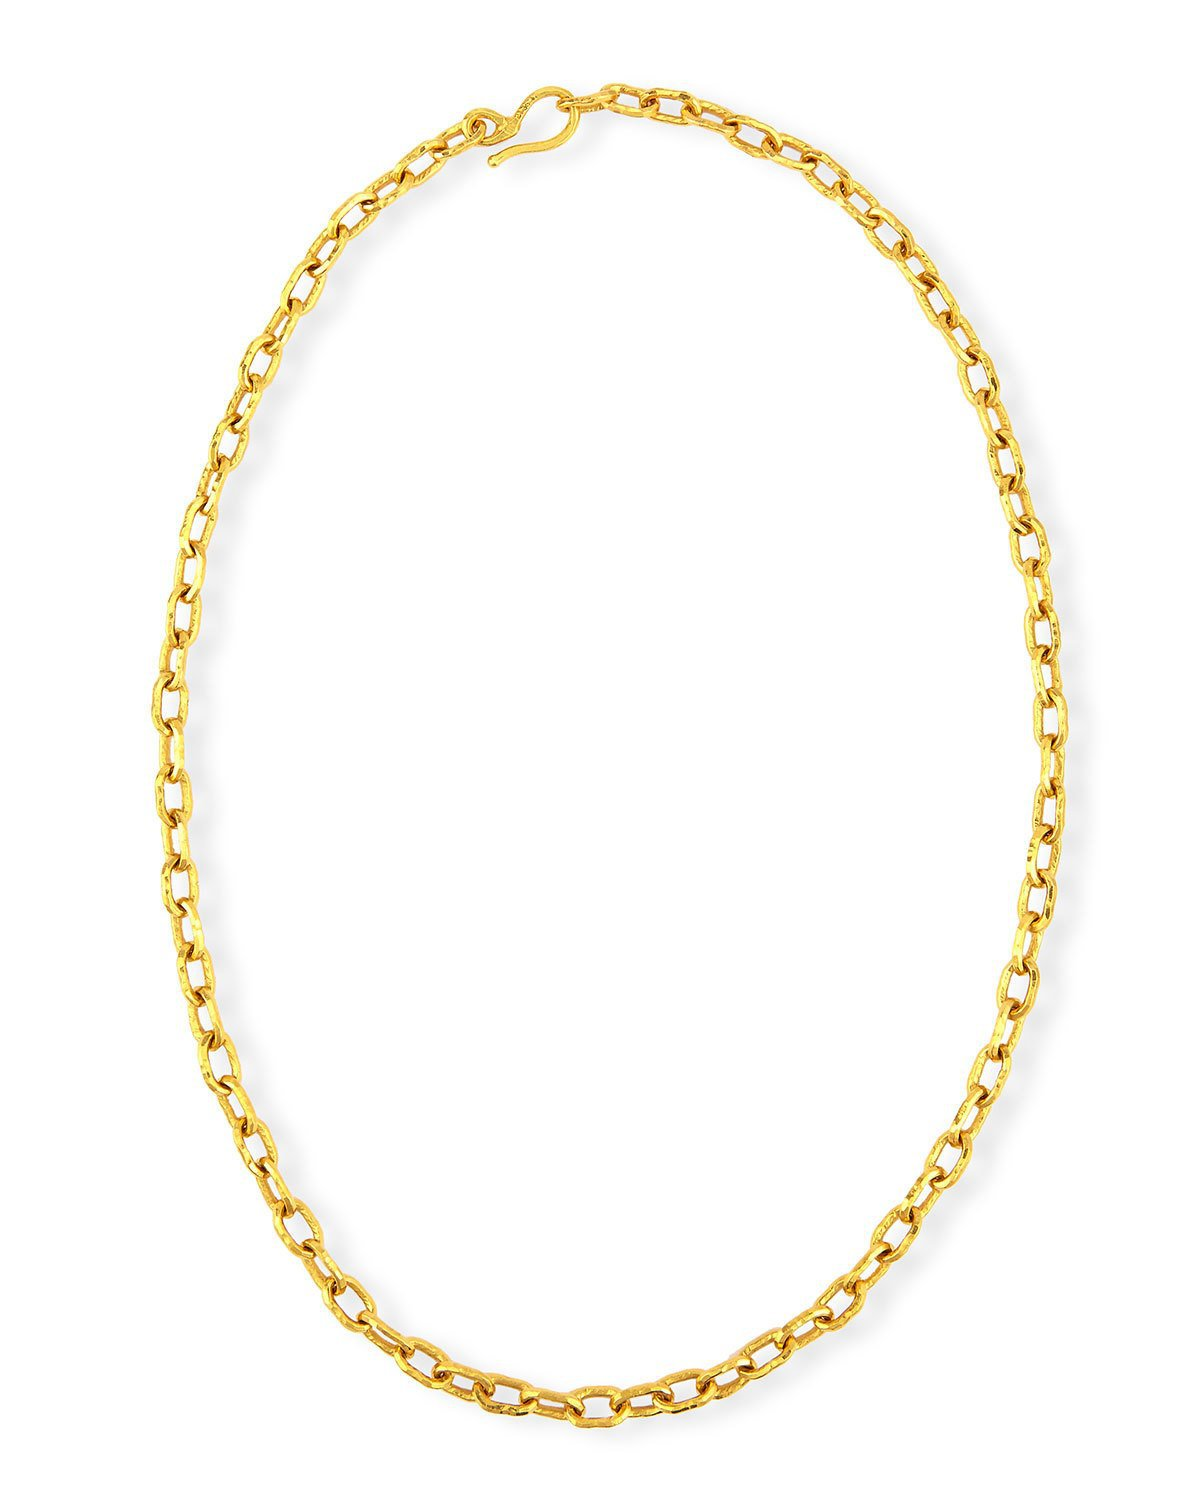 "Jean Mahie 26"" Cadene 22K Yellow Gold Link Necklace"